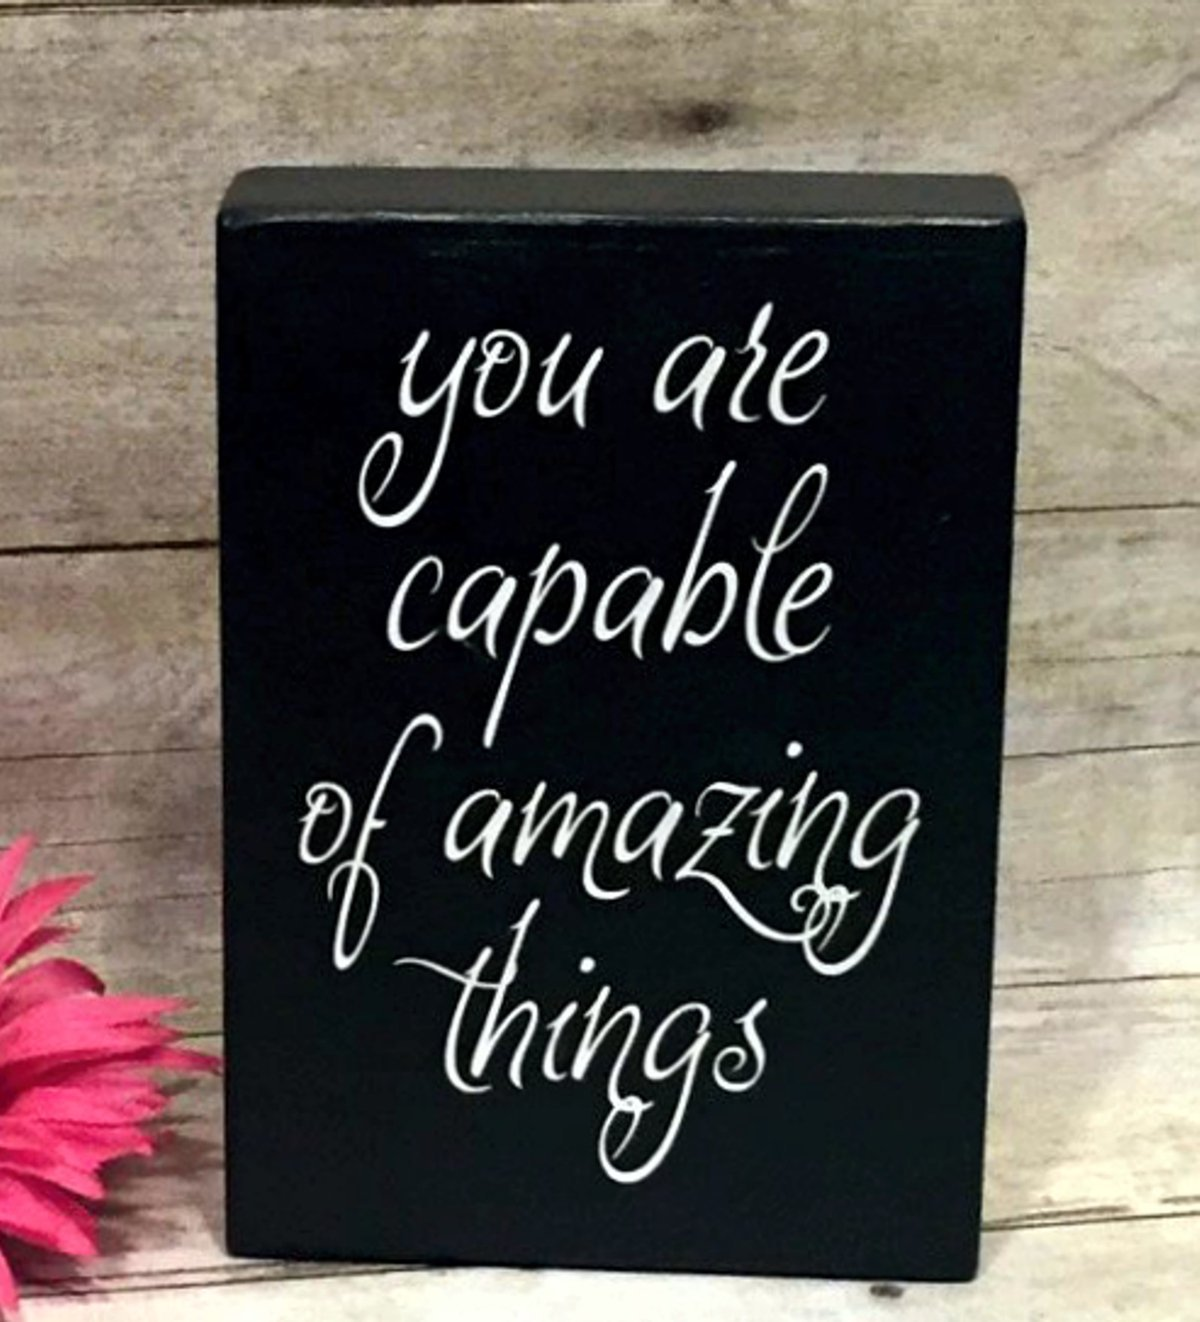 You Are Capable Of Amazing Things / Inspirational Gifts For Girls / 5''x7'' Inspirational Wood Block Sign / Graduation Gift, Your Choice Of Colors